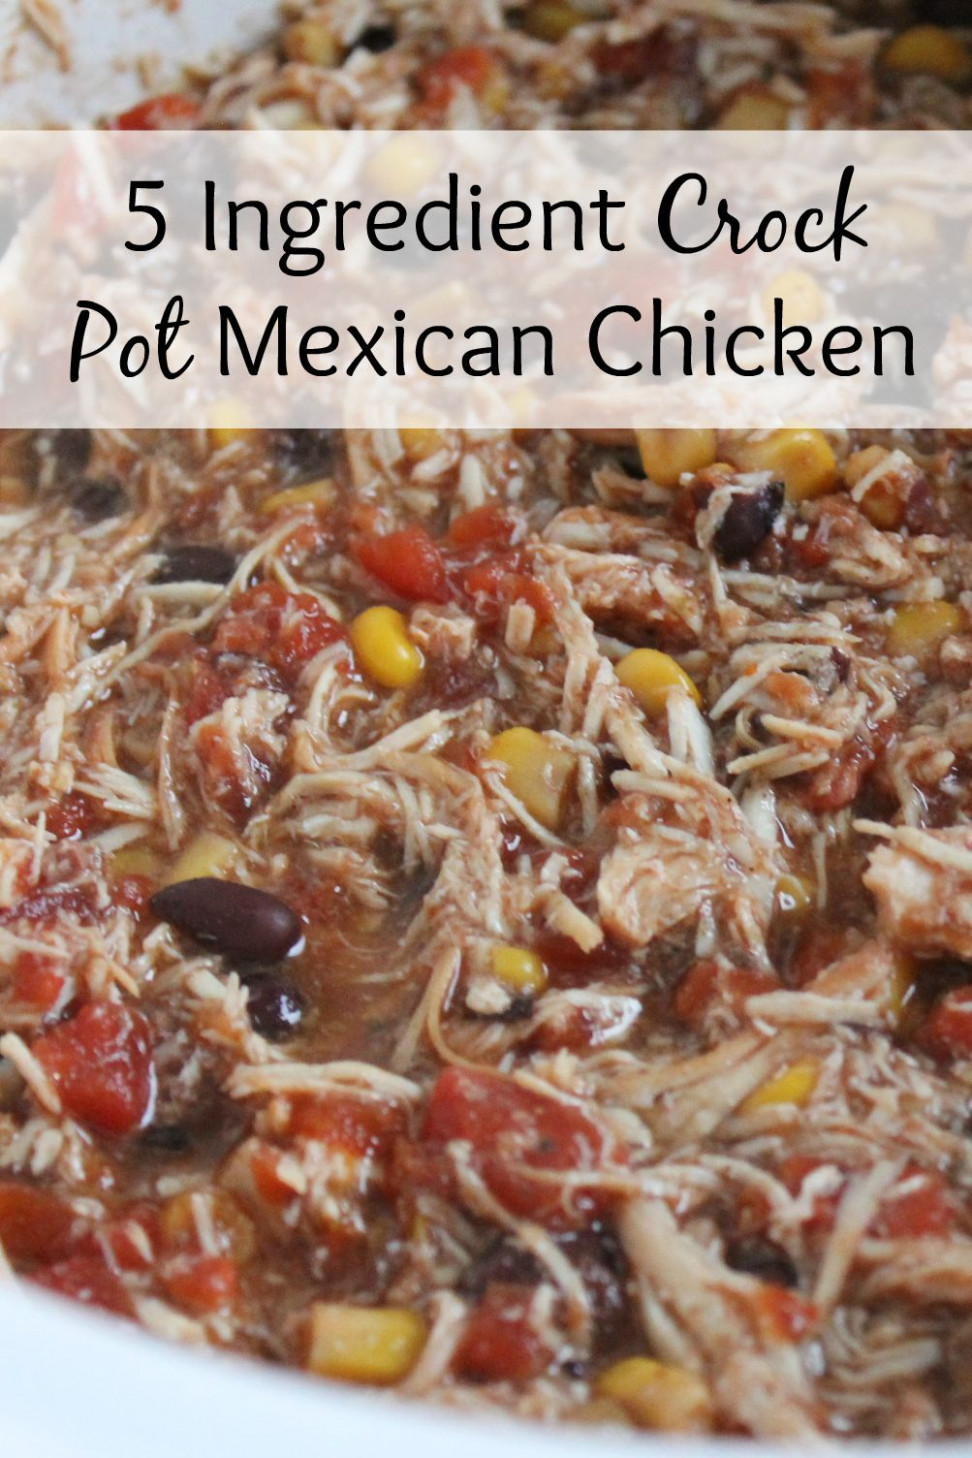 5 Ingredient Crock Pot Mexican Chicken